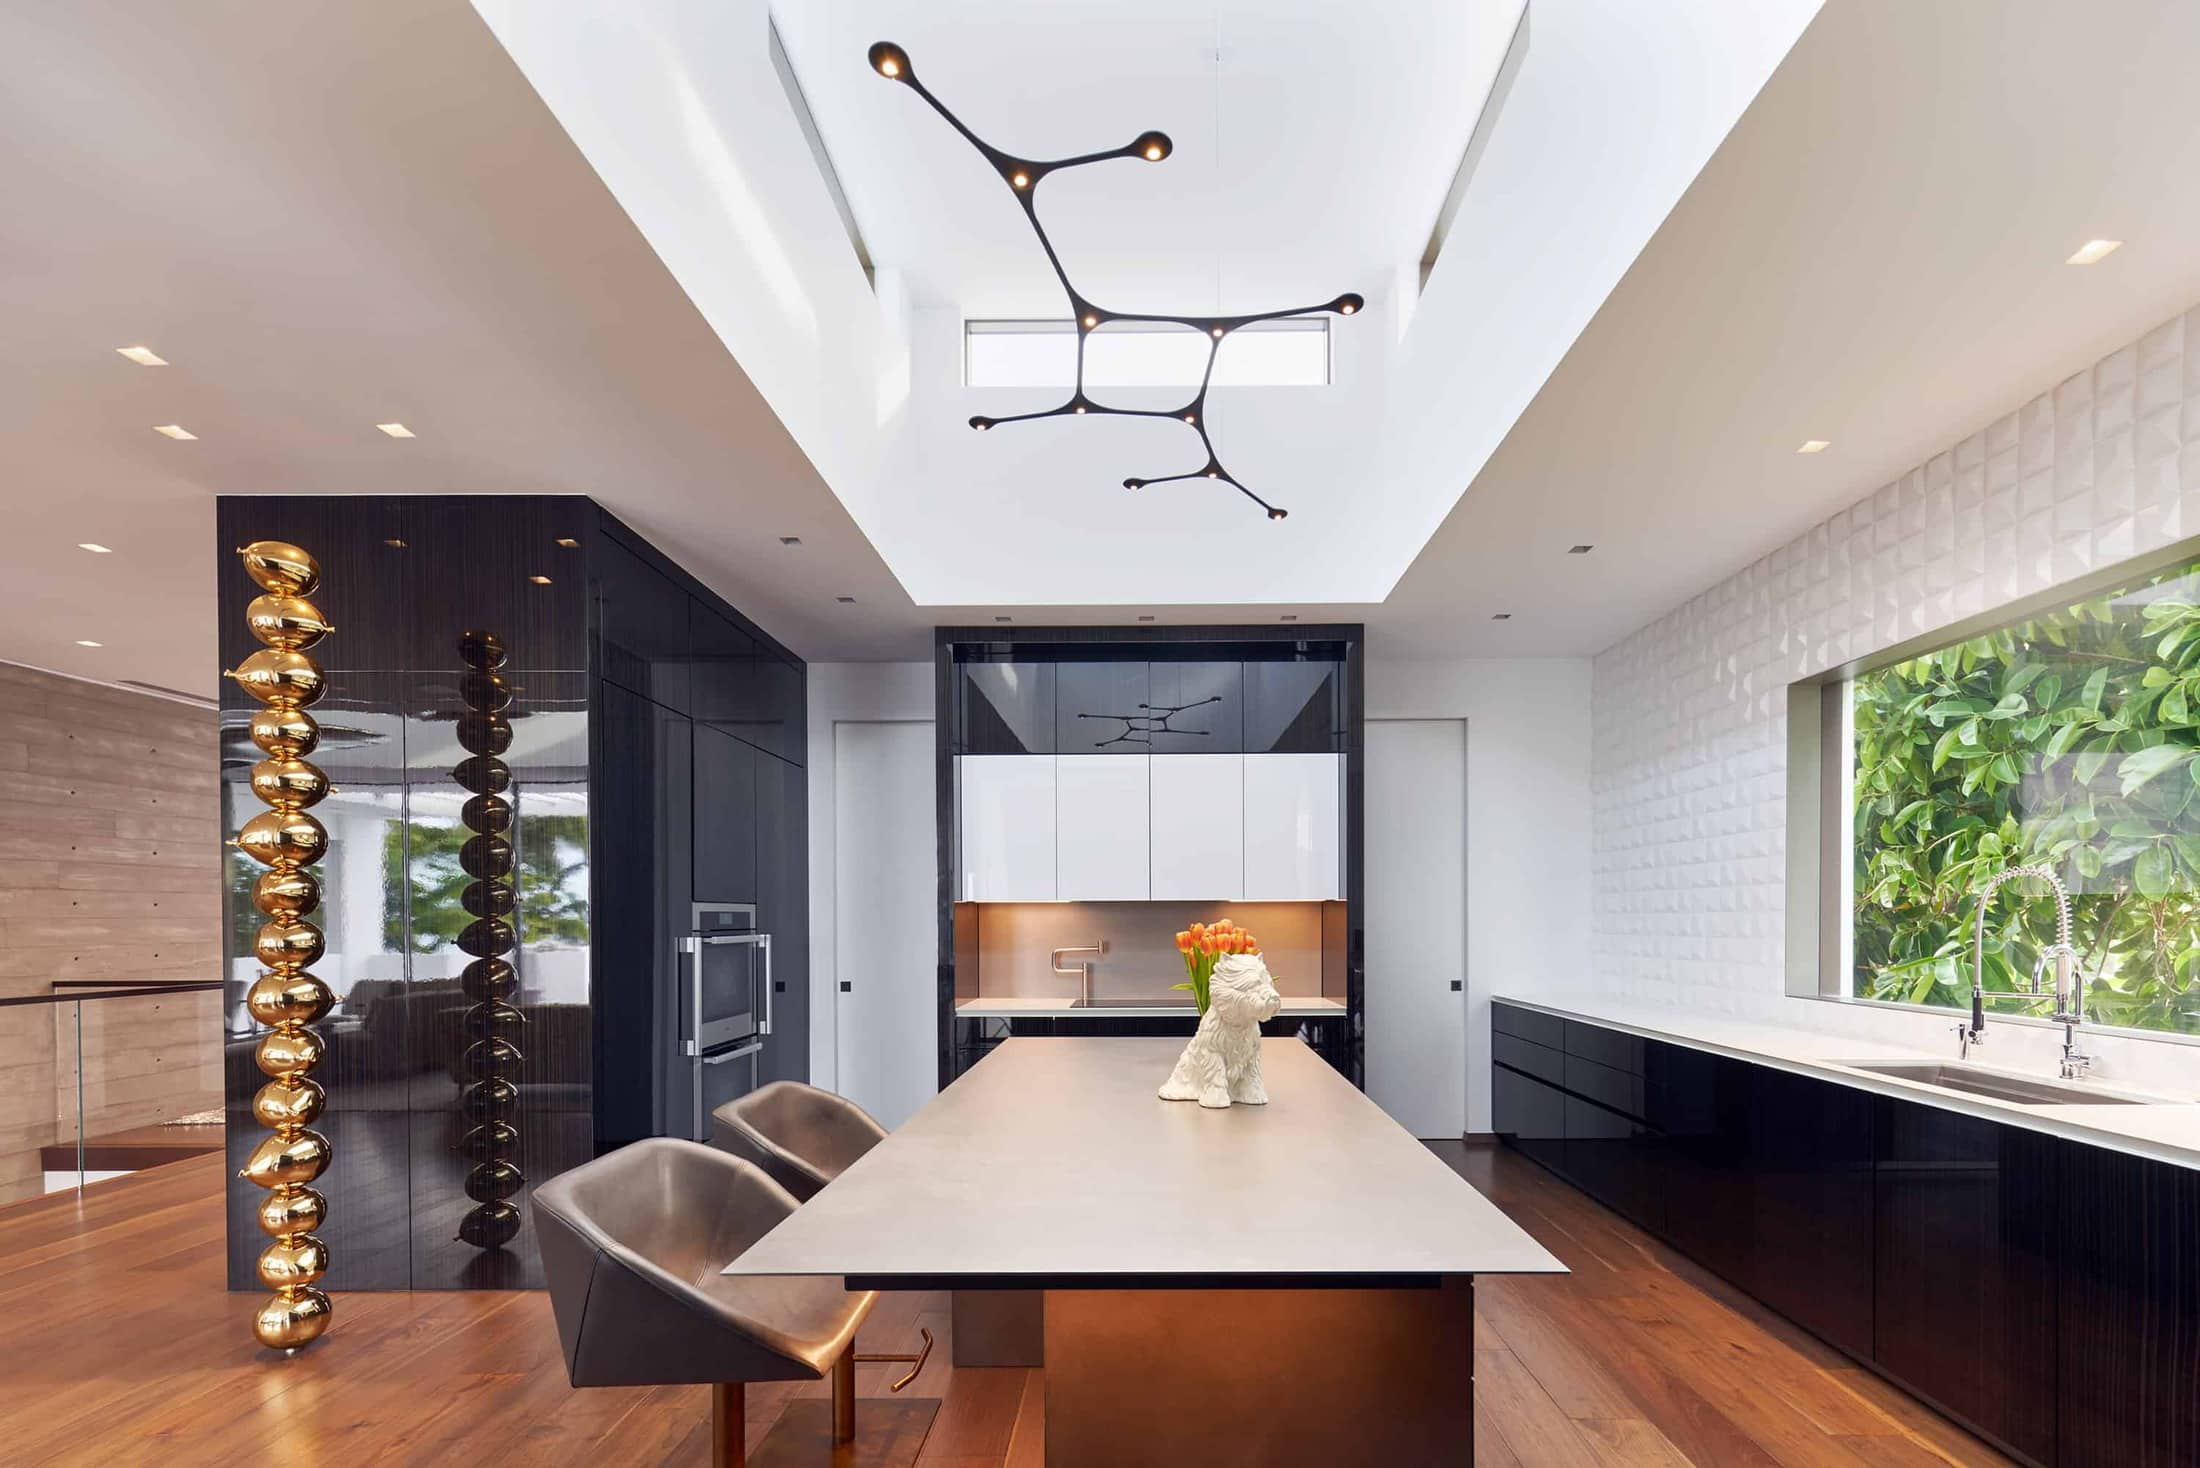 eggersmann custom dine-in luxury kitchen featureing Gloss Tricolor Ebony, Dark Grey Concrete, and Silvertouch hot rolled Steel finishes